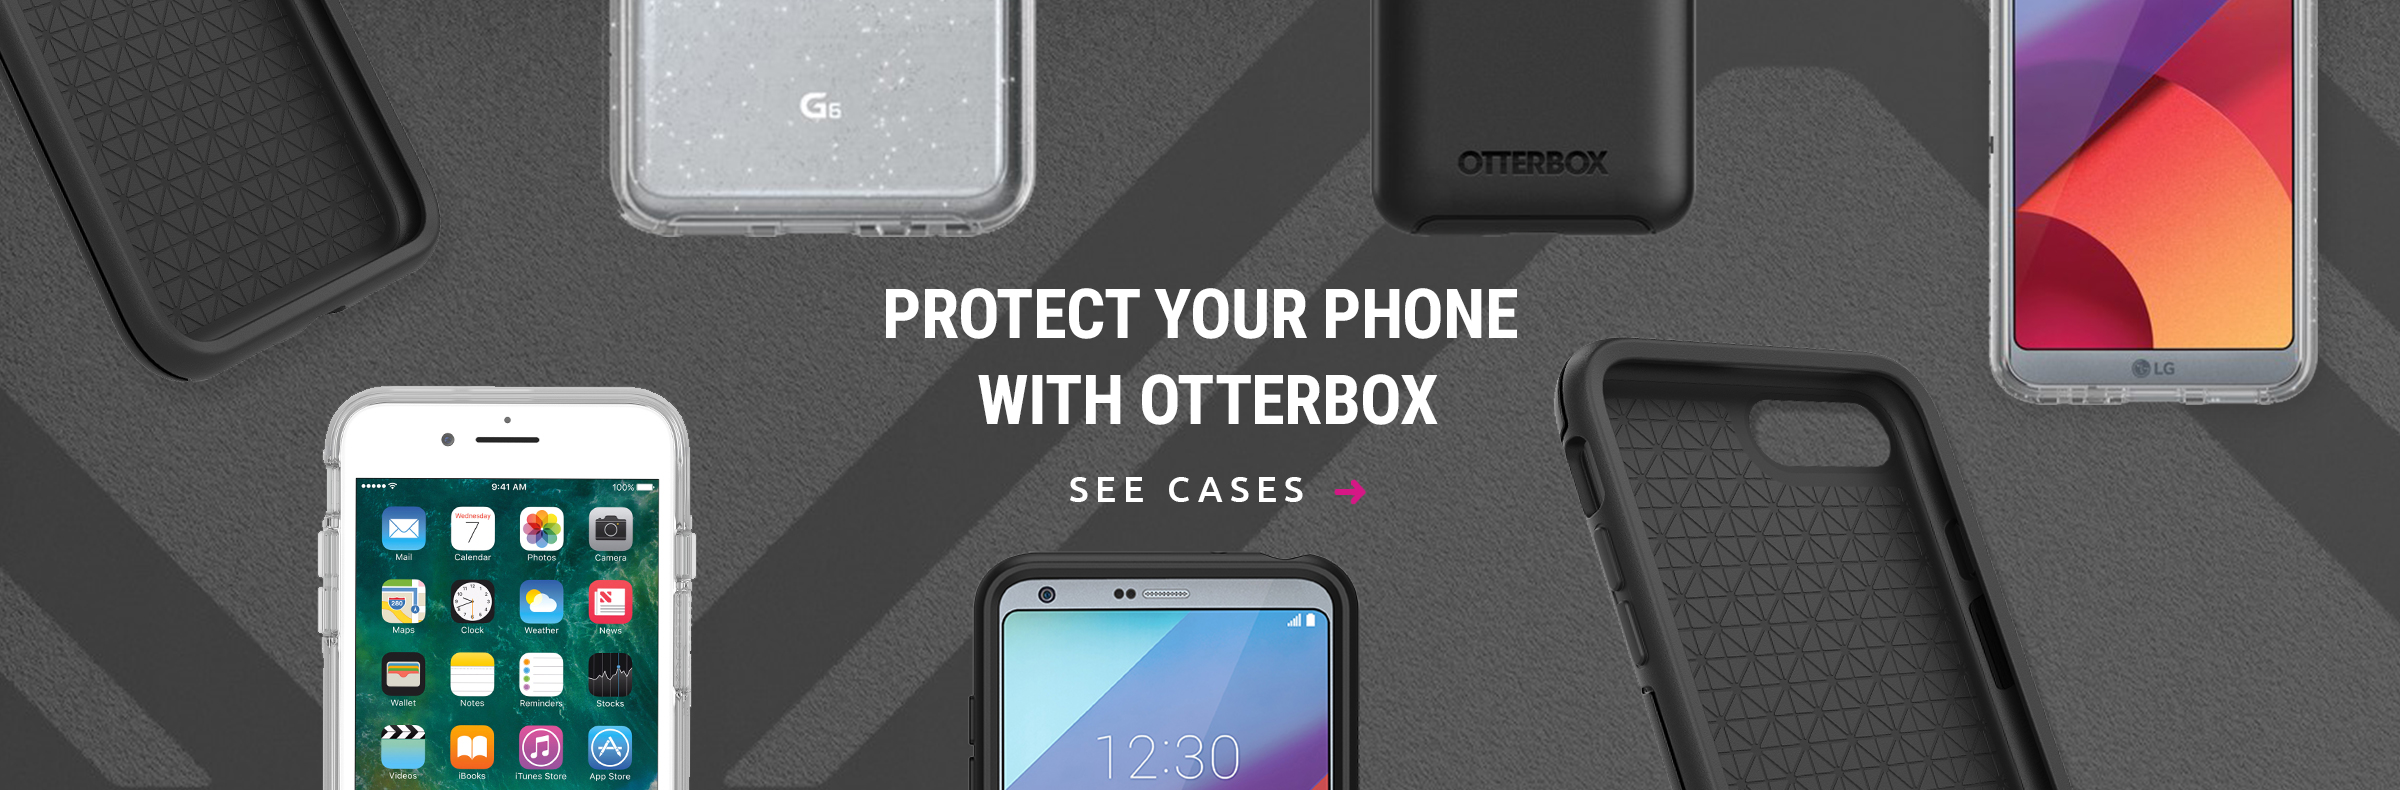 Otterbox Accessories at Tbooth wireless